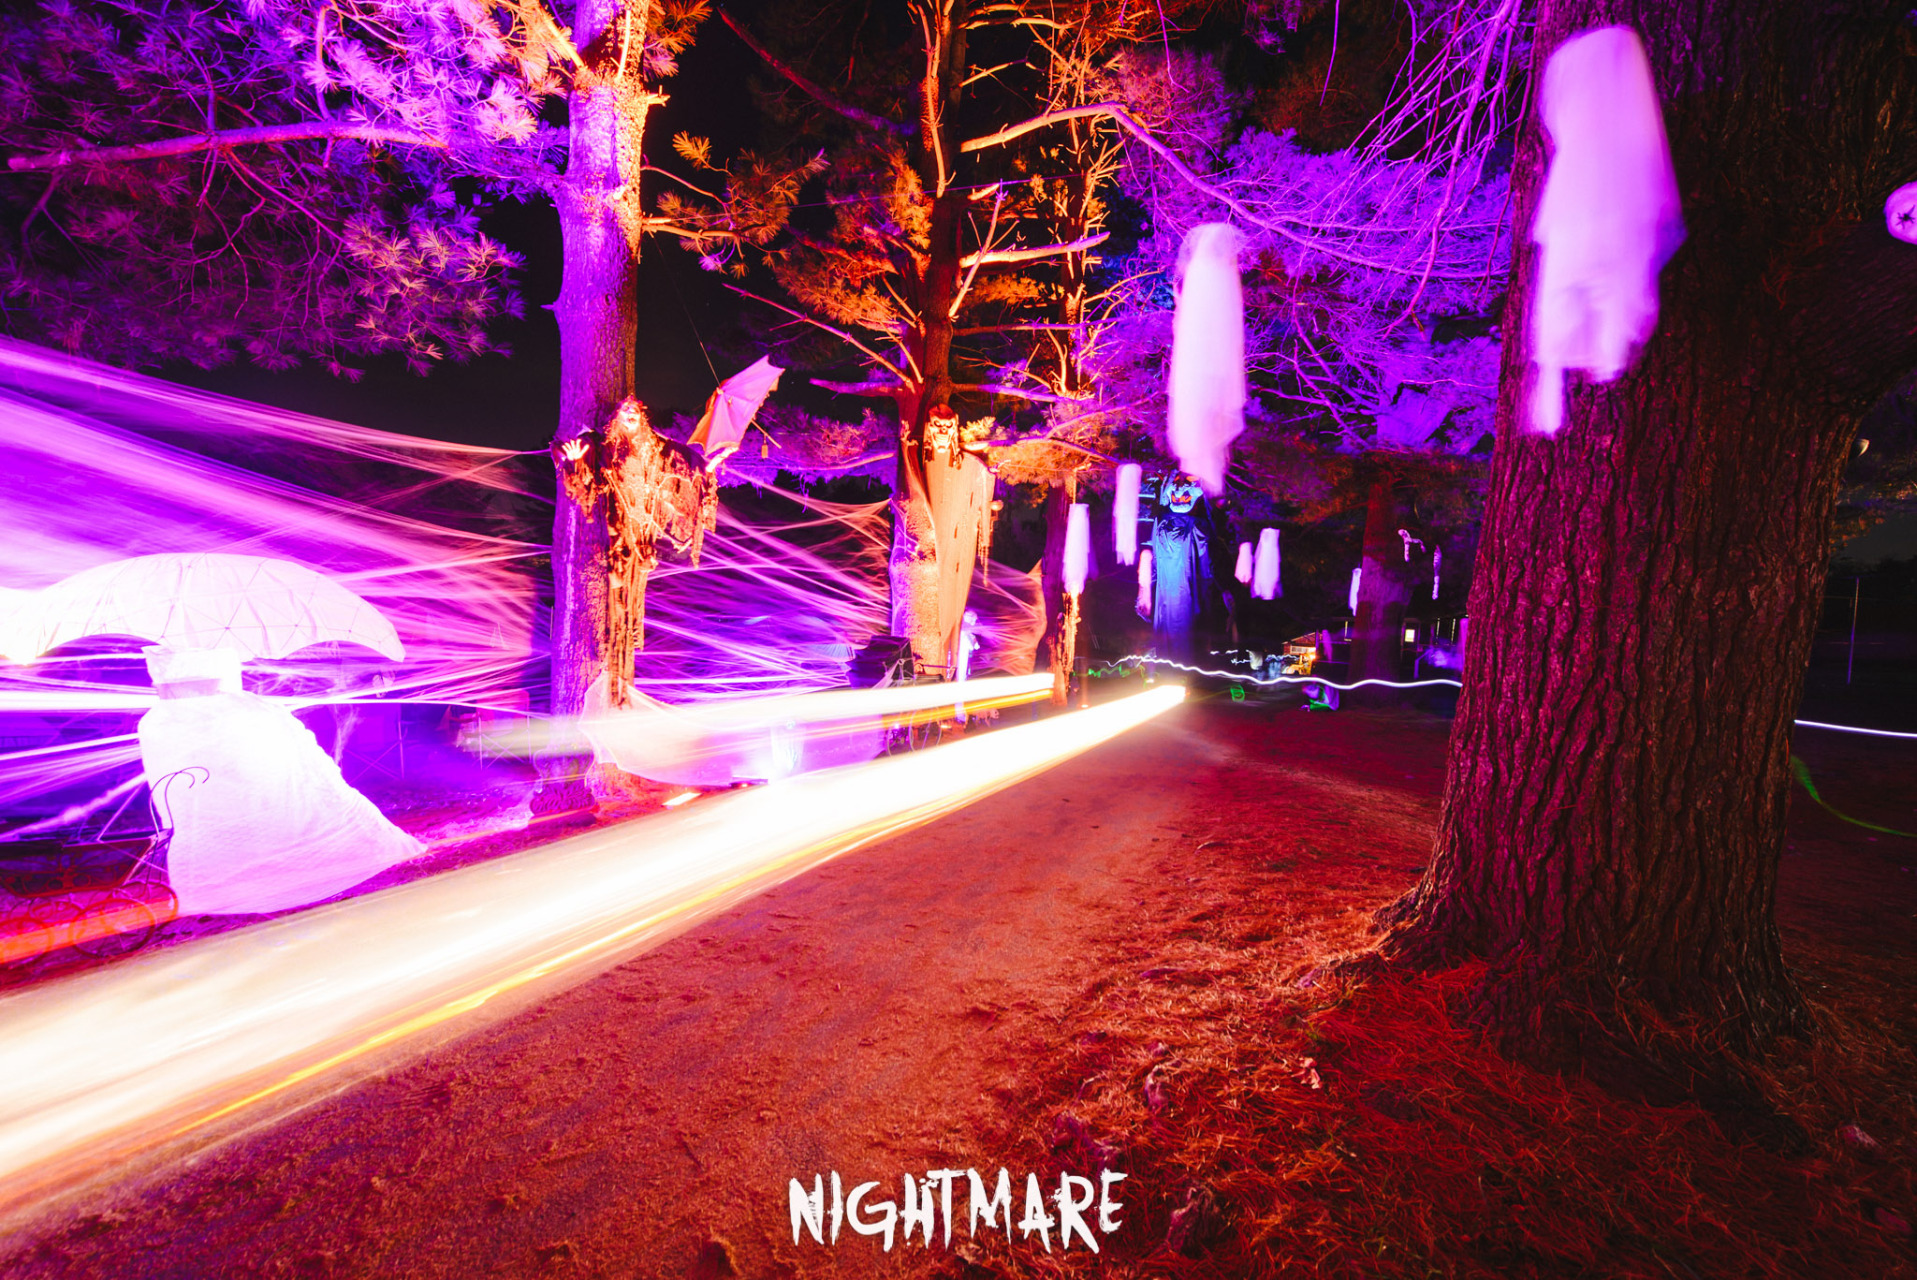 Nightmare_day1-29